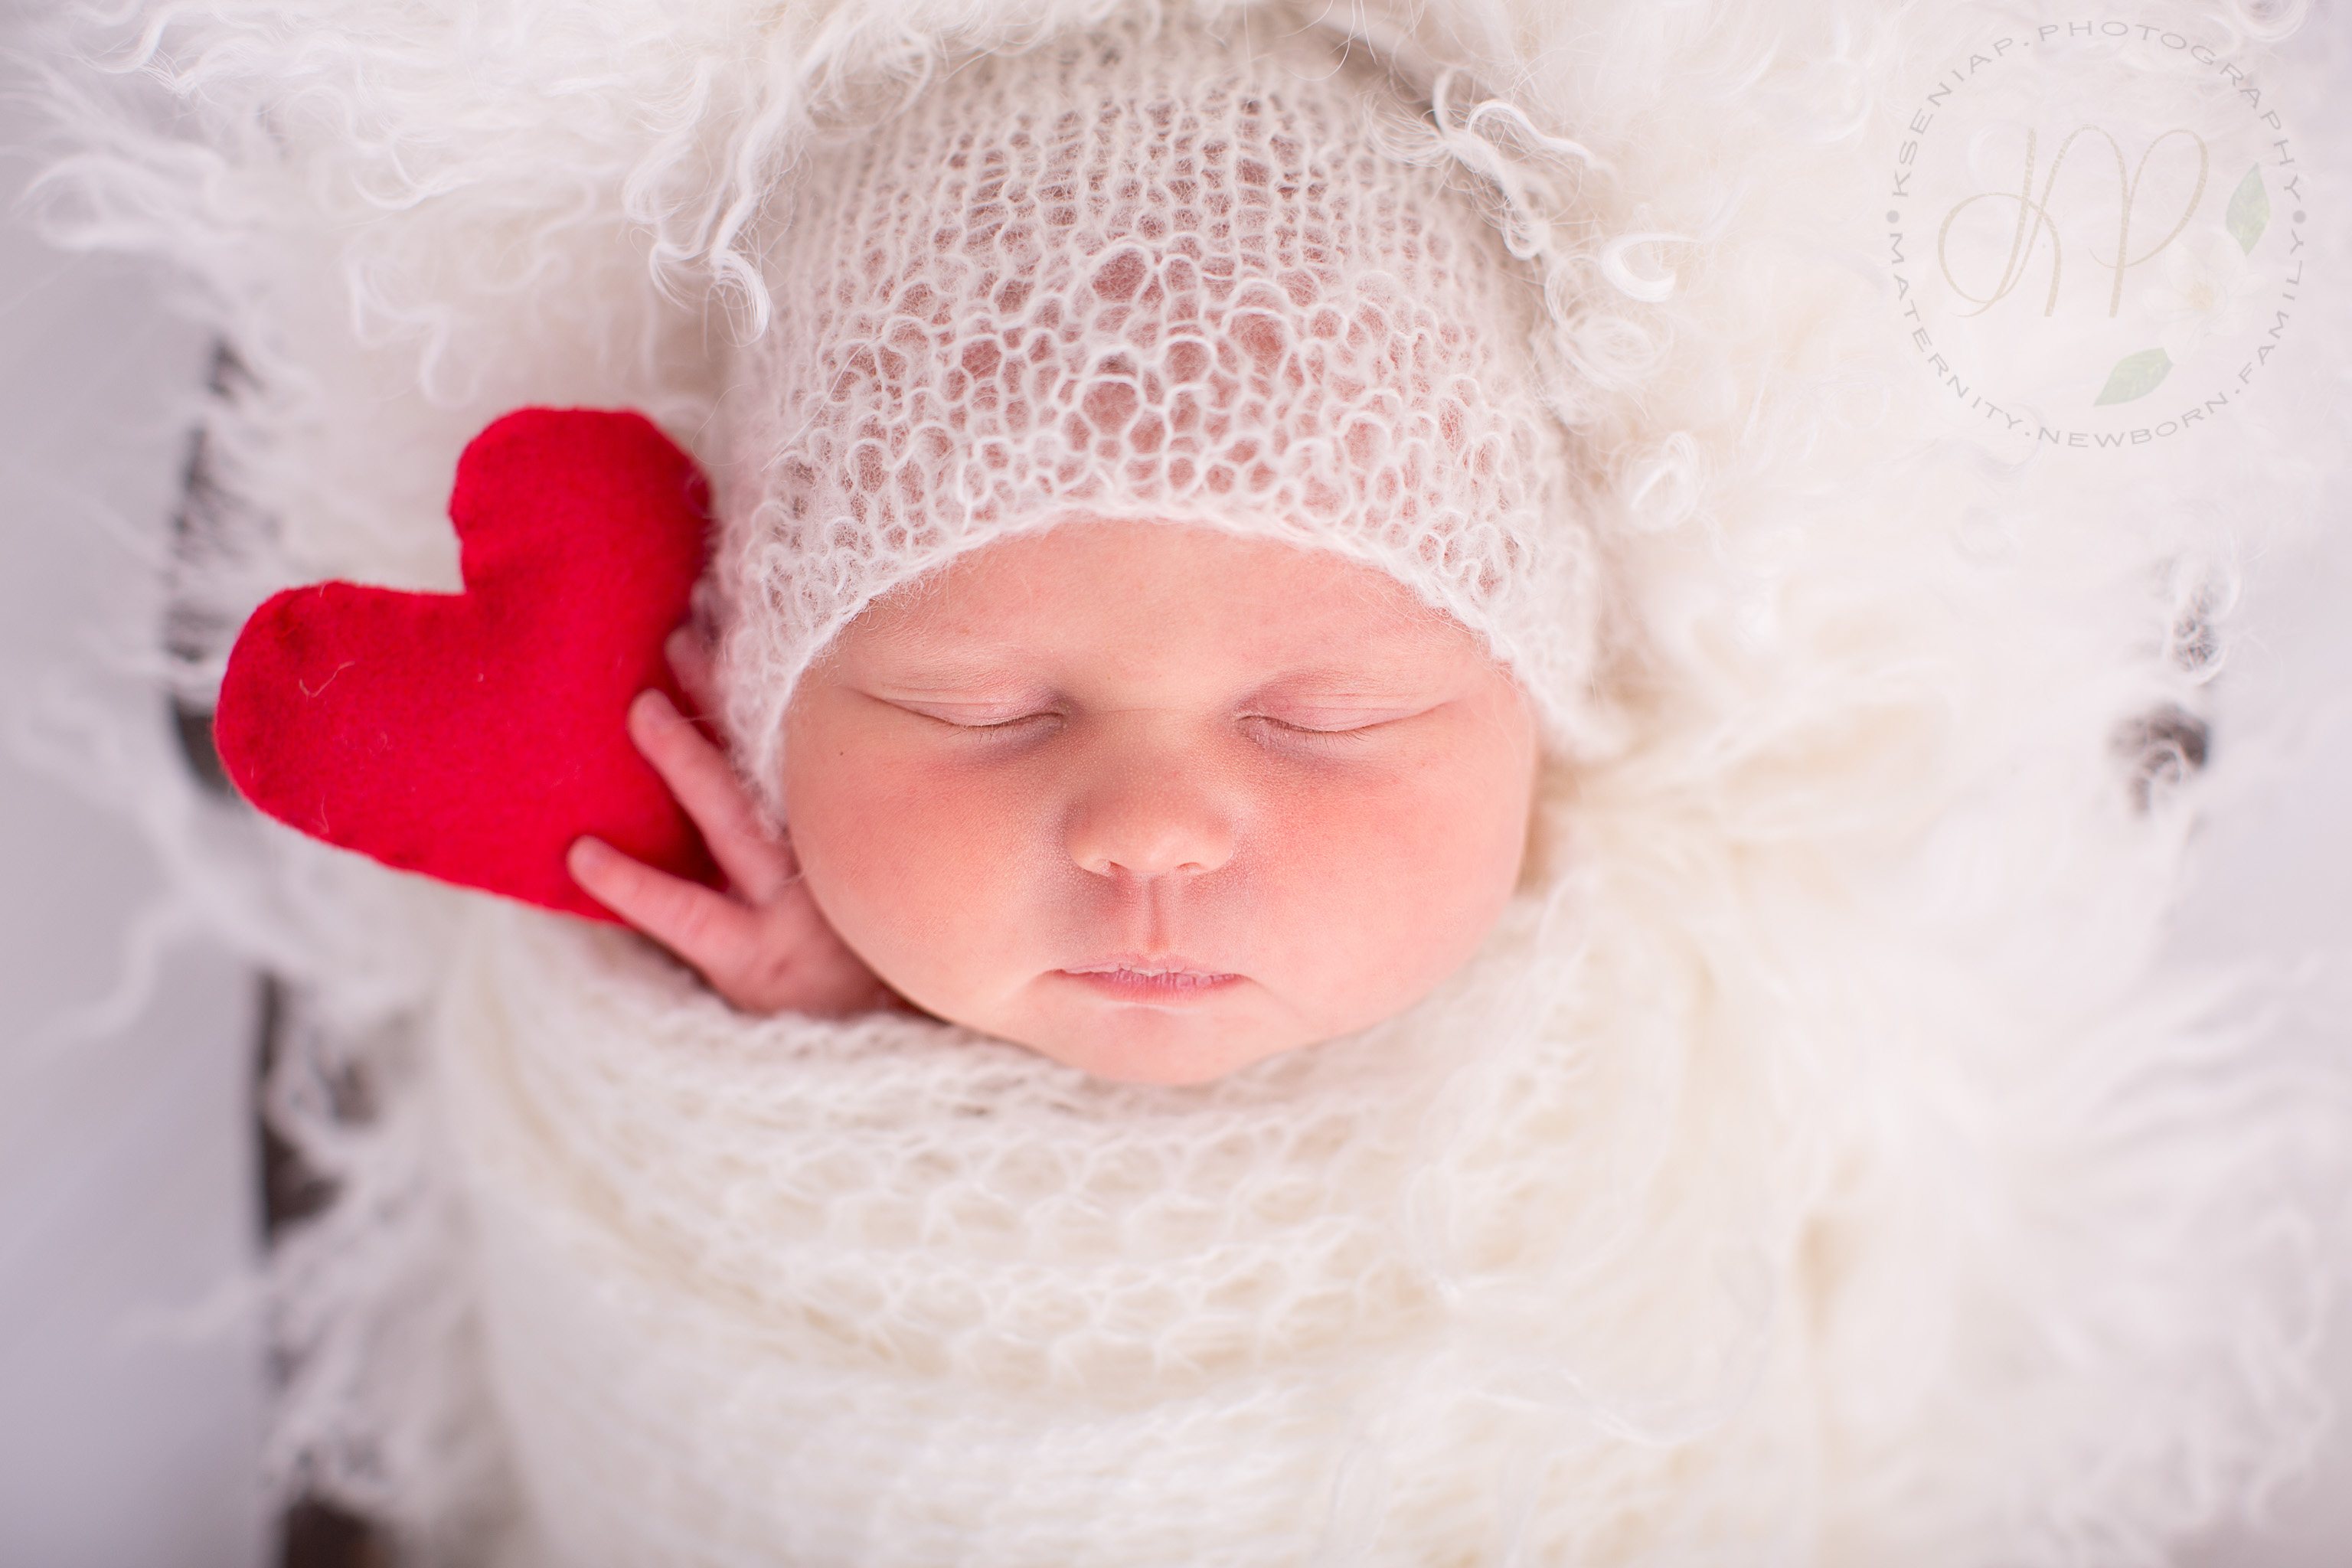 Image of newborn baby wrapped in white fabric holding felt heart